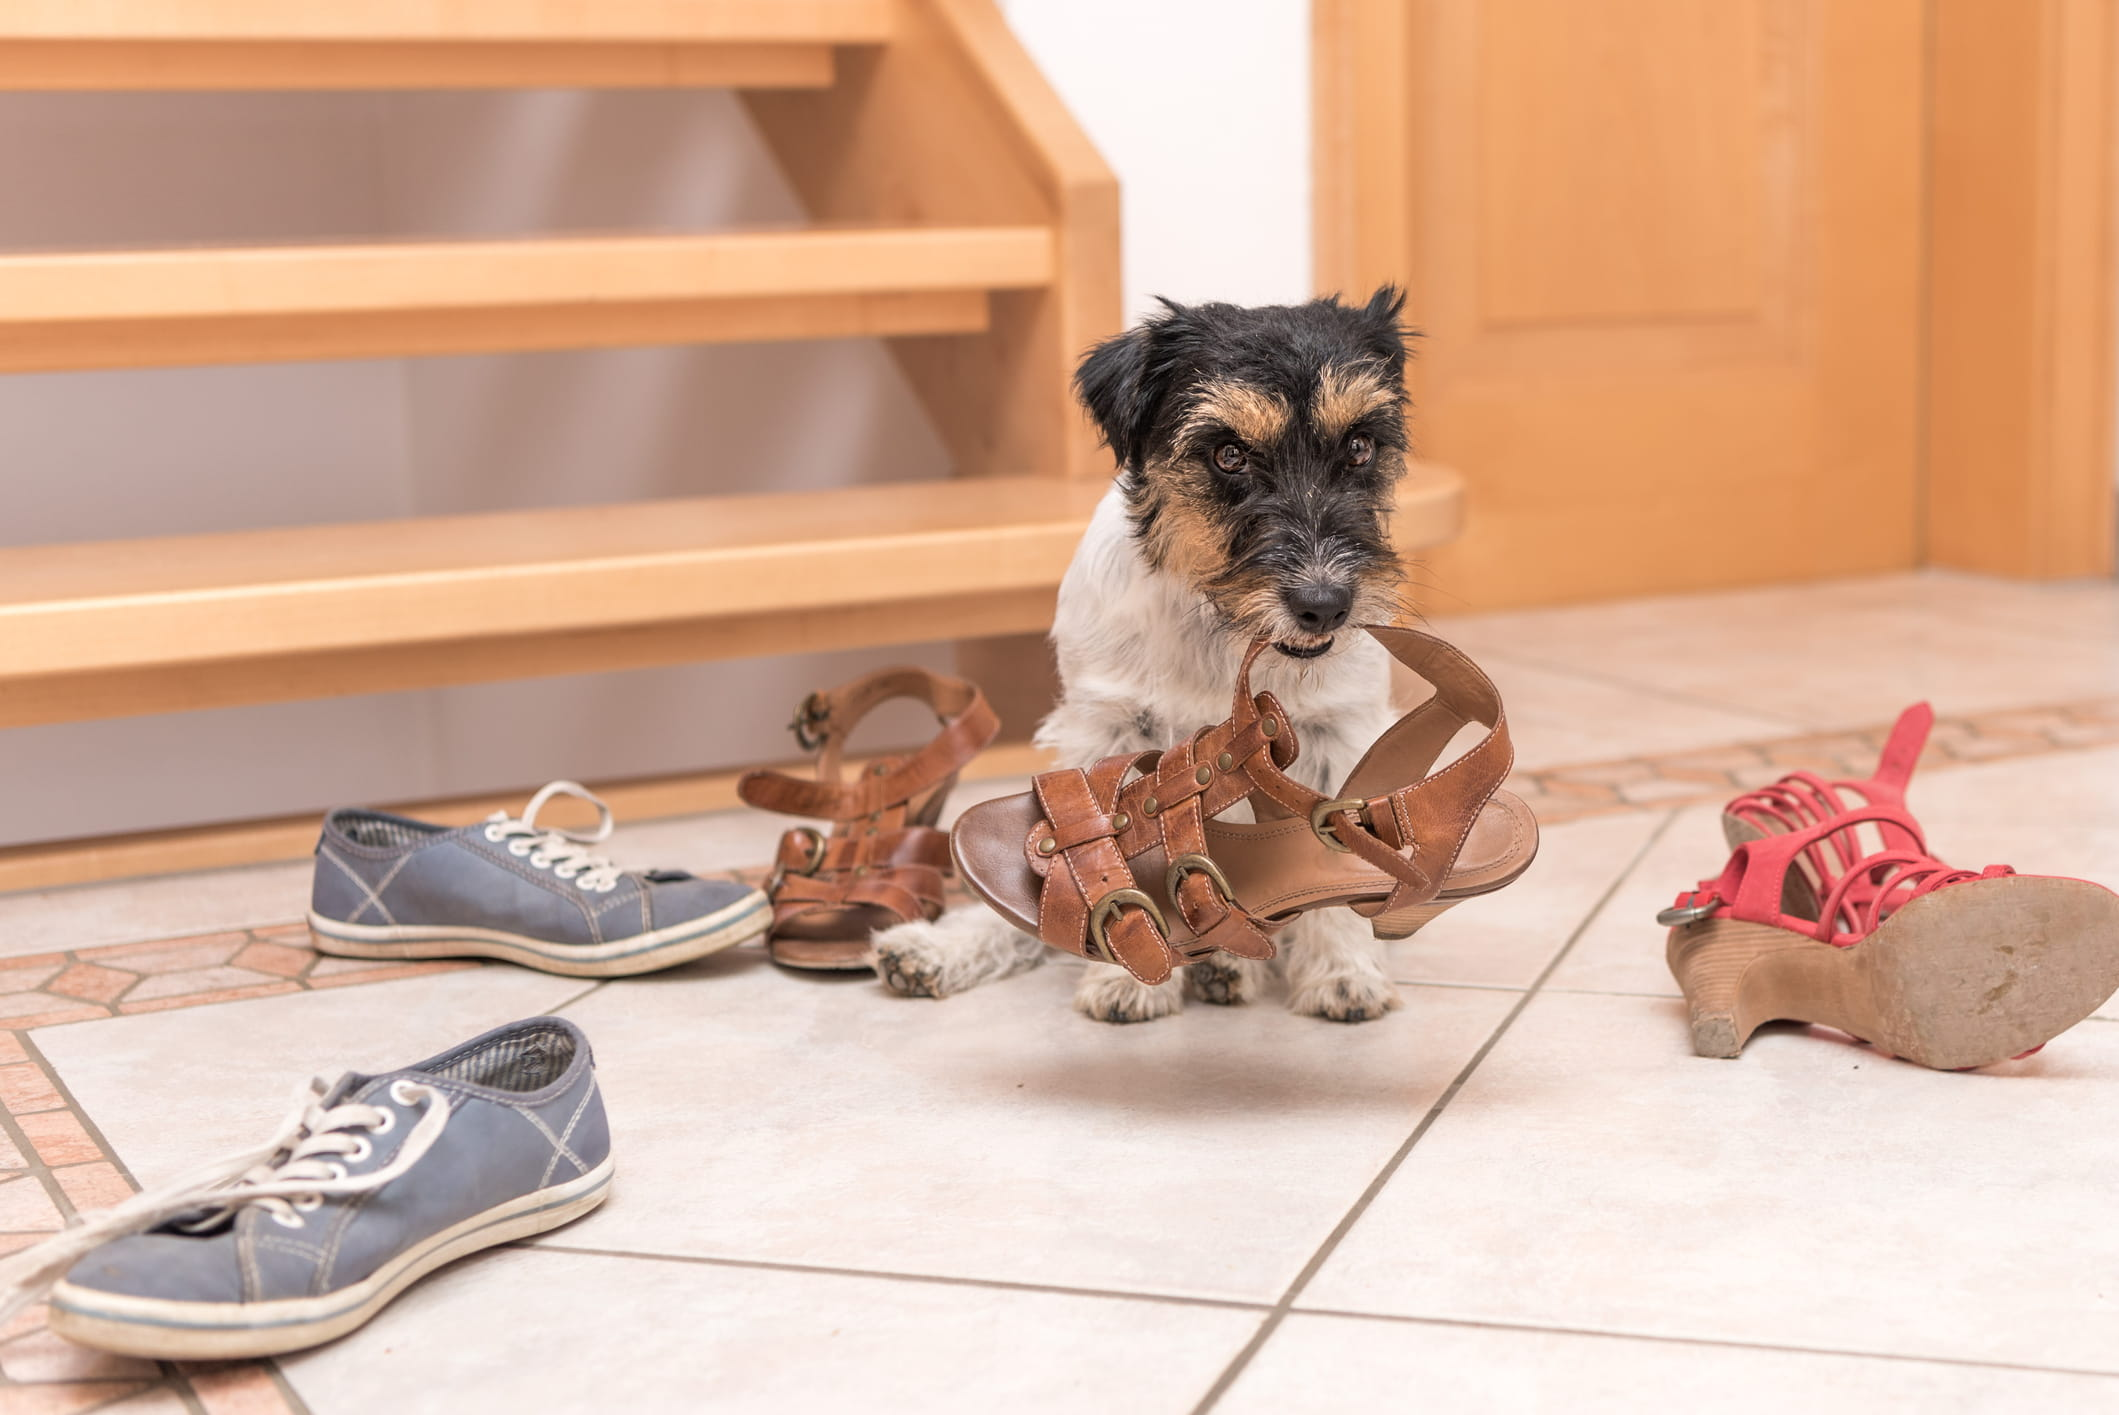 8 Pet Cameras Every Pet Owner Should Know About Safewise